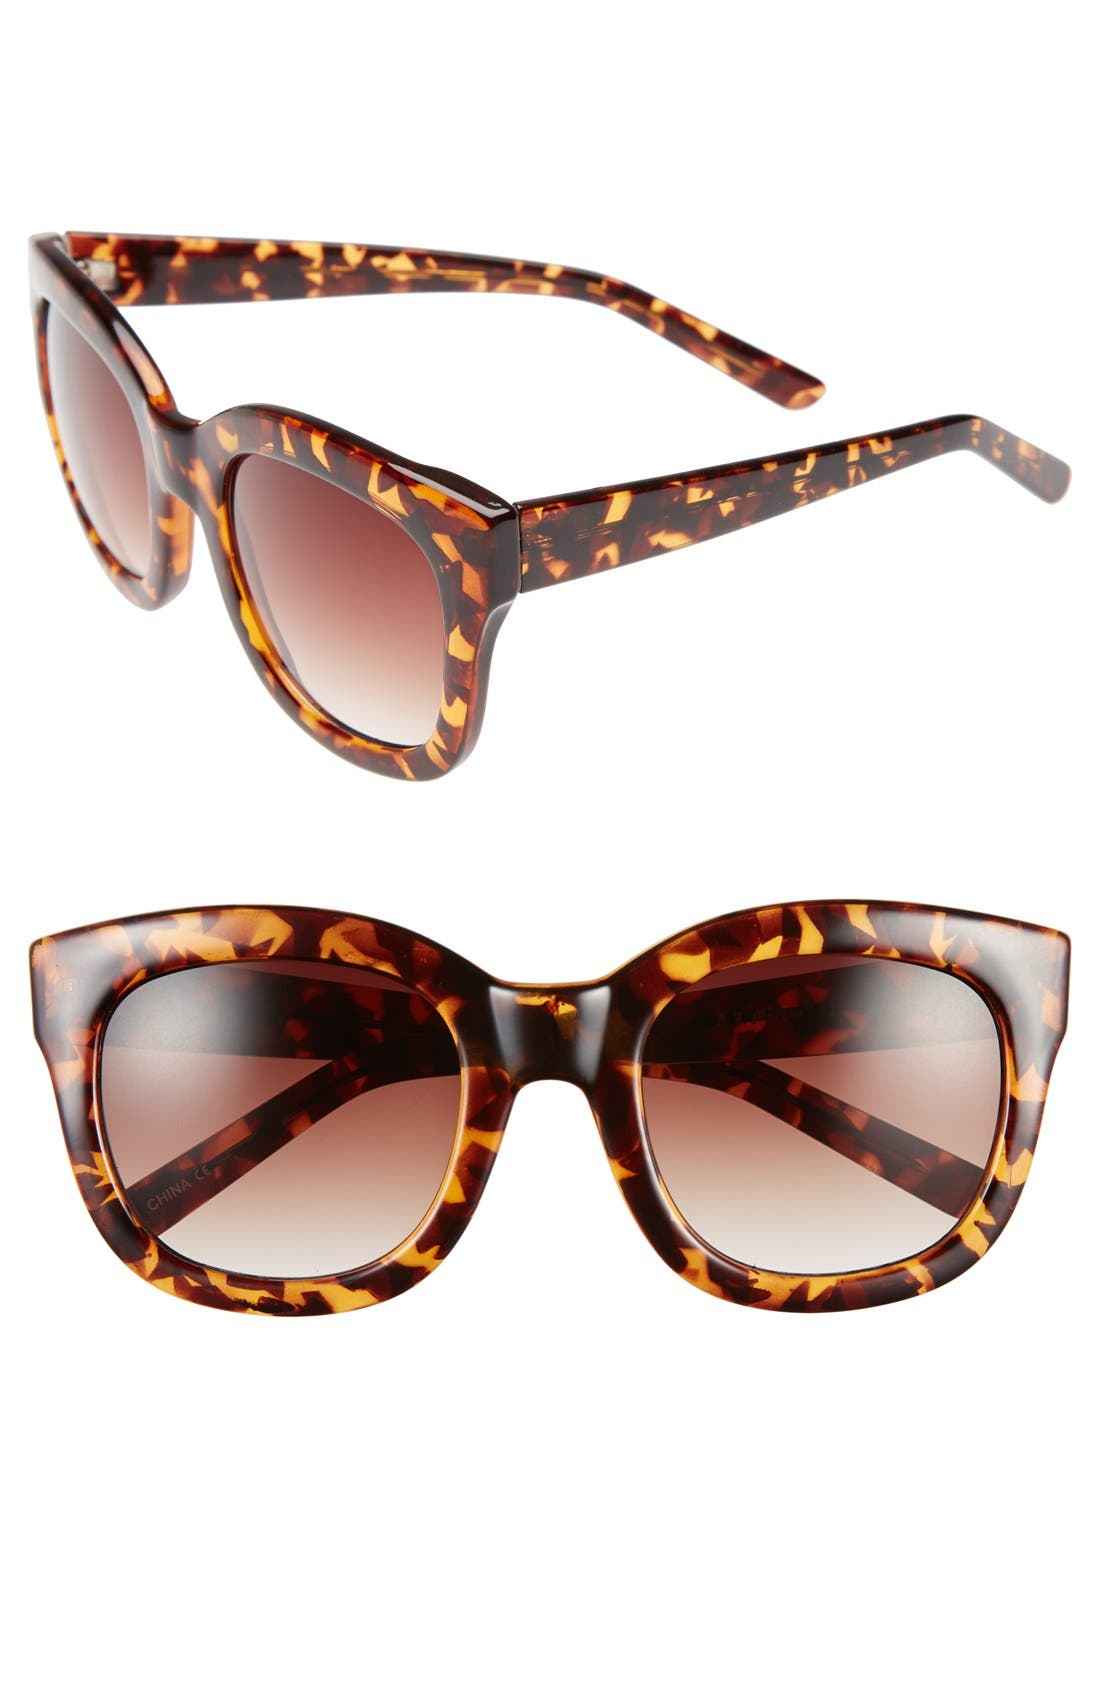 'Feline' 54mm Oversized Cat Eye Sunglasses,                             Main thumbnail 1, color,                             Tortoise